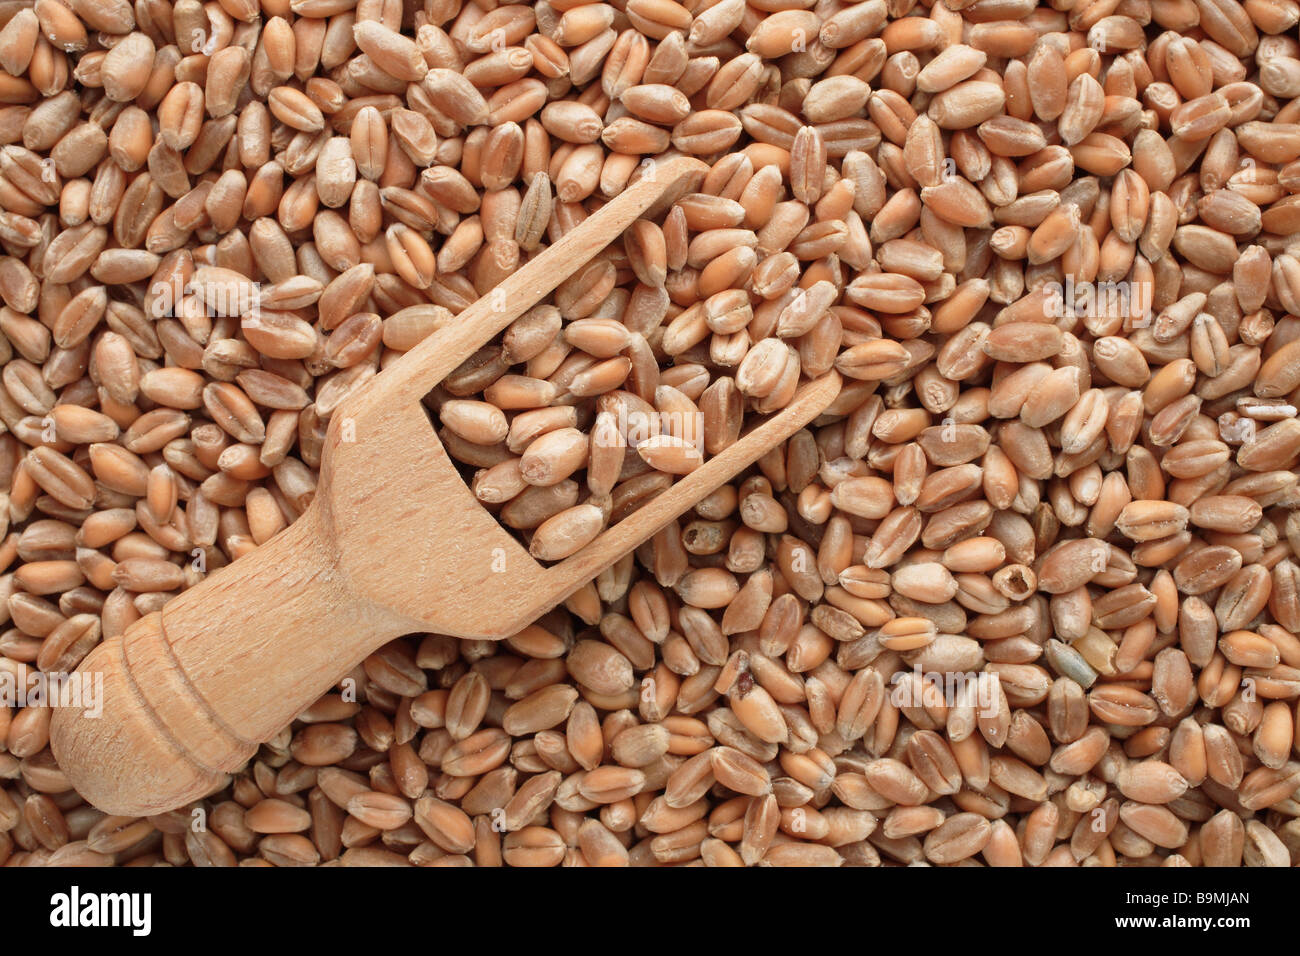 wheat Triticum spp - Stock Image